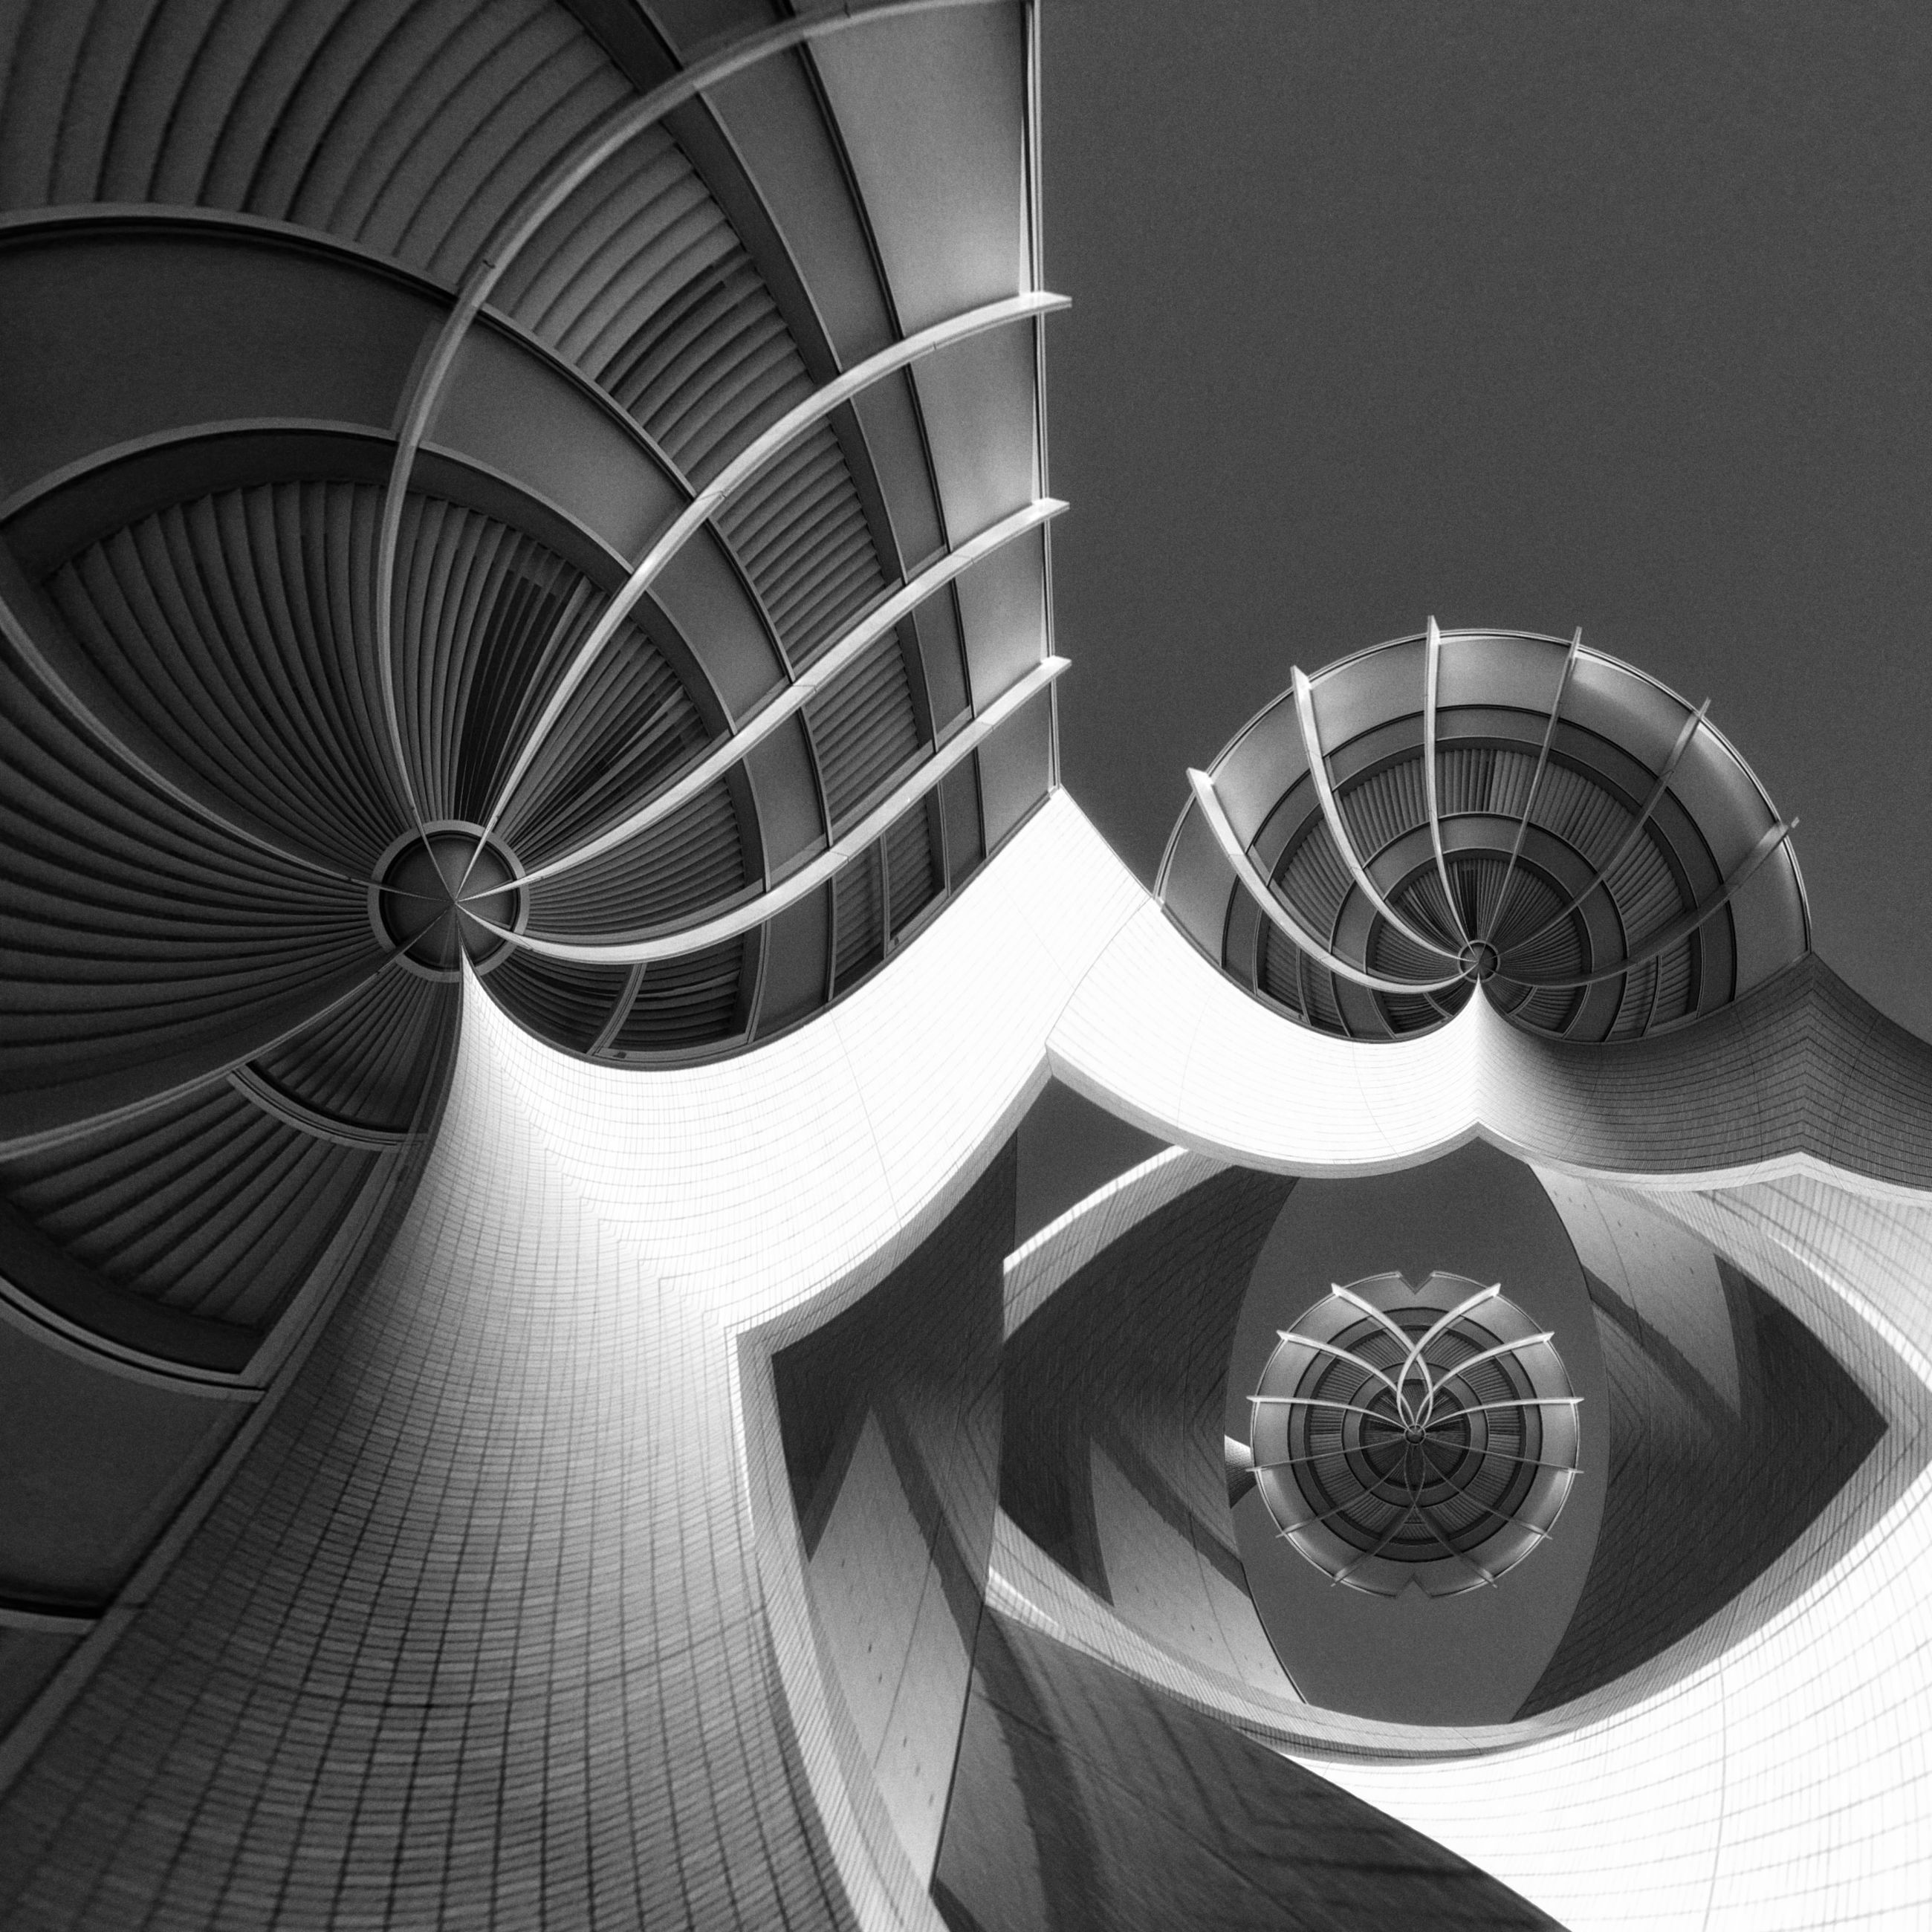 architecture, built structure, building exterior, pattern, low angle view, design, building, indoors, modern, no people, day, circle, city, spiral, close-up, sunlight, part of, window, metal